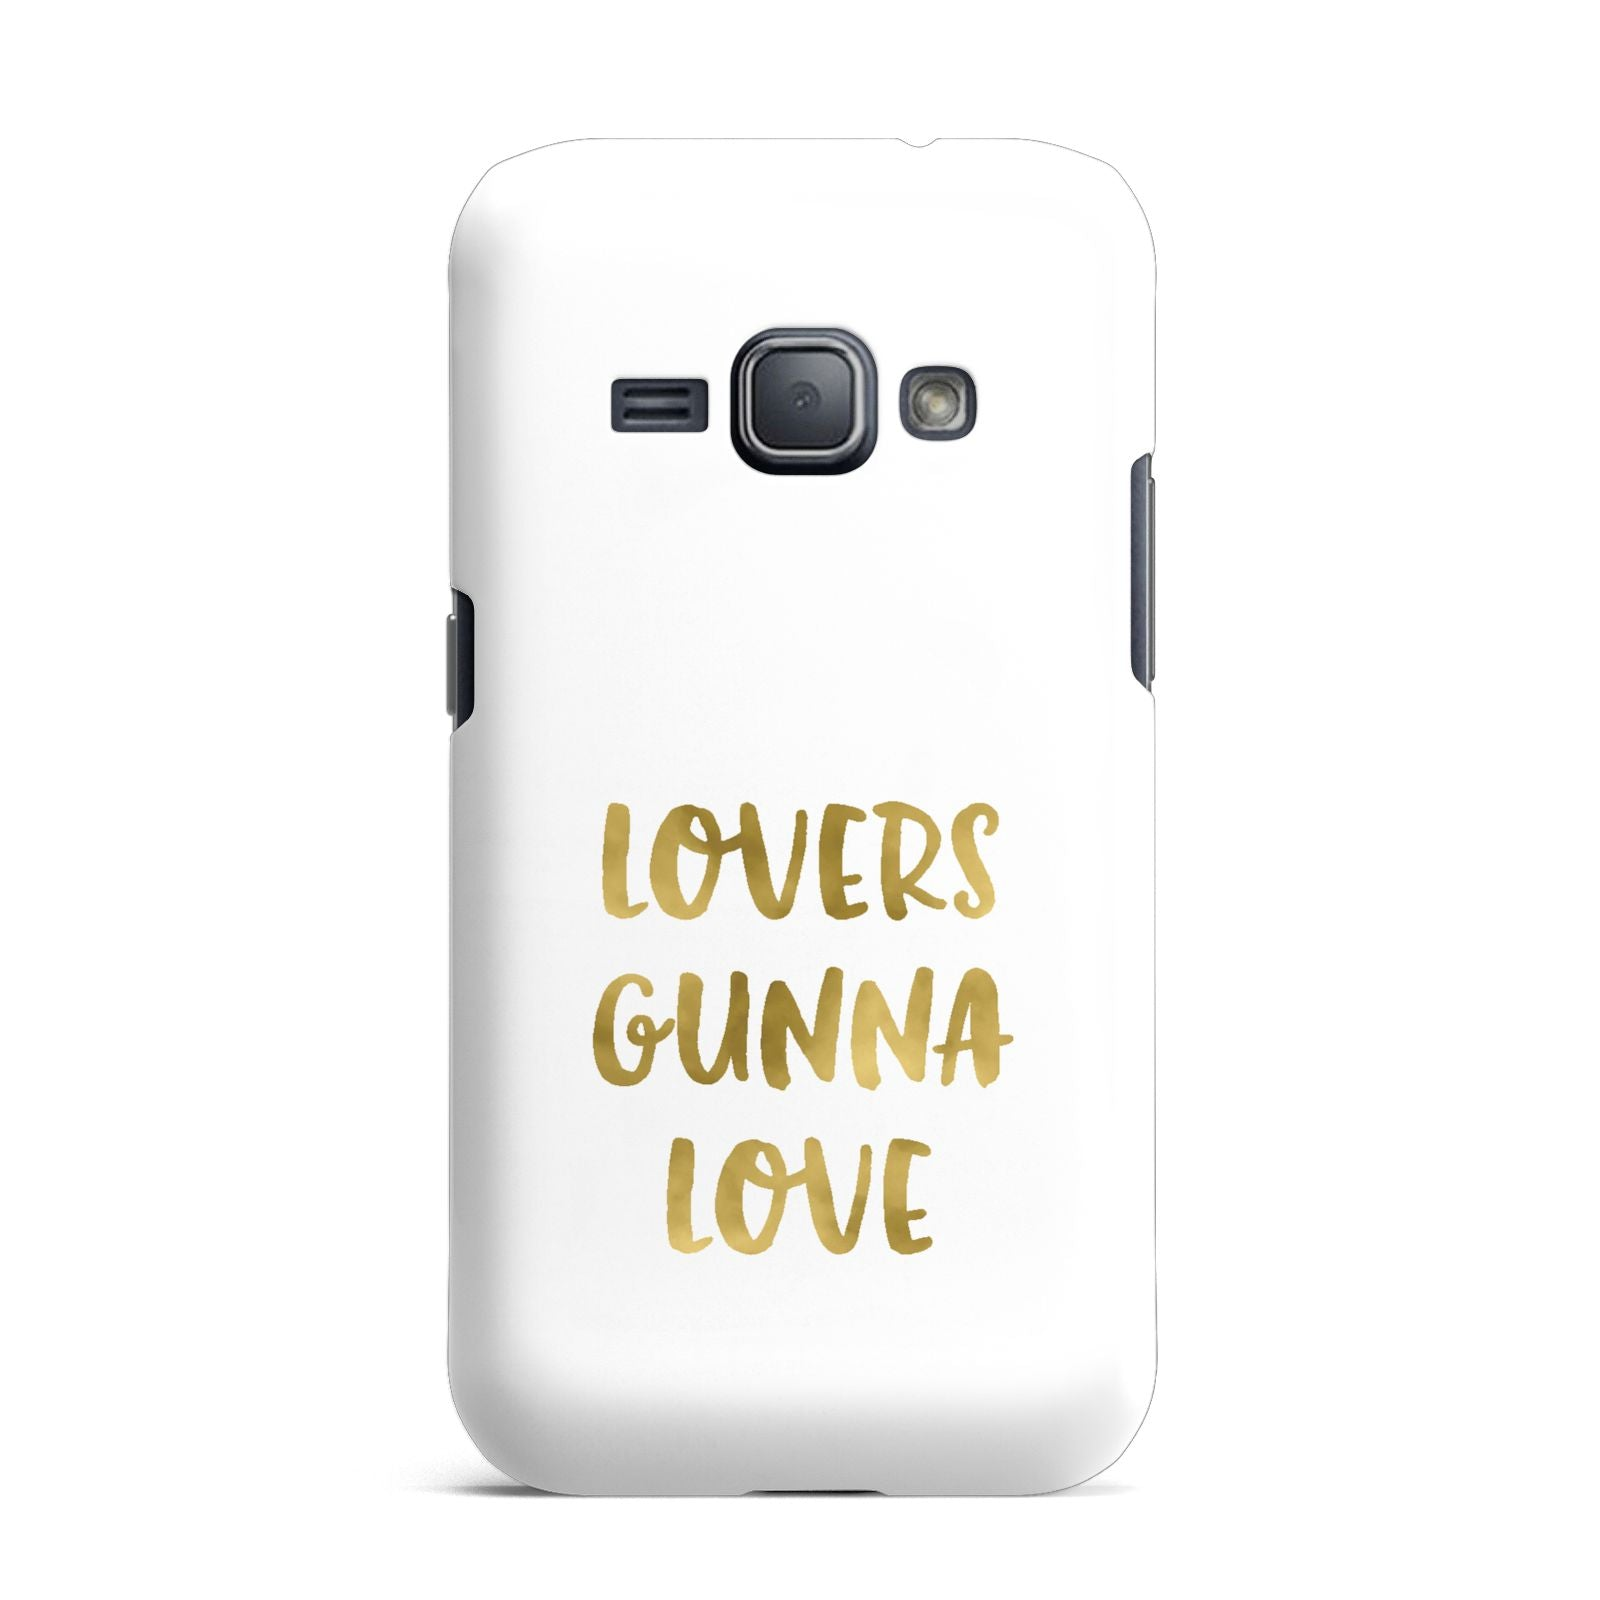 Lovers Gunna Love Real Gold Foil Samsung Galaxy J1 2016 Case